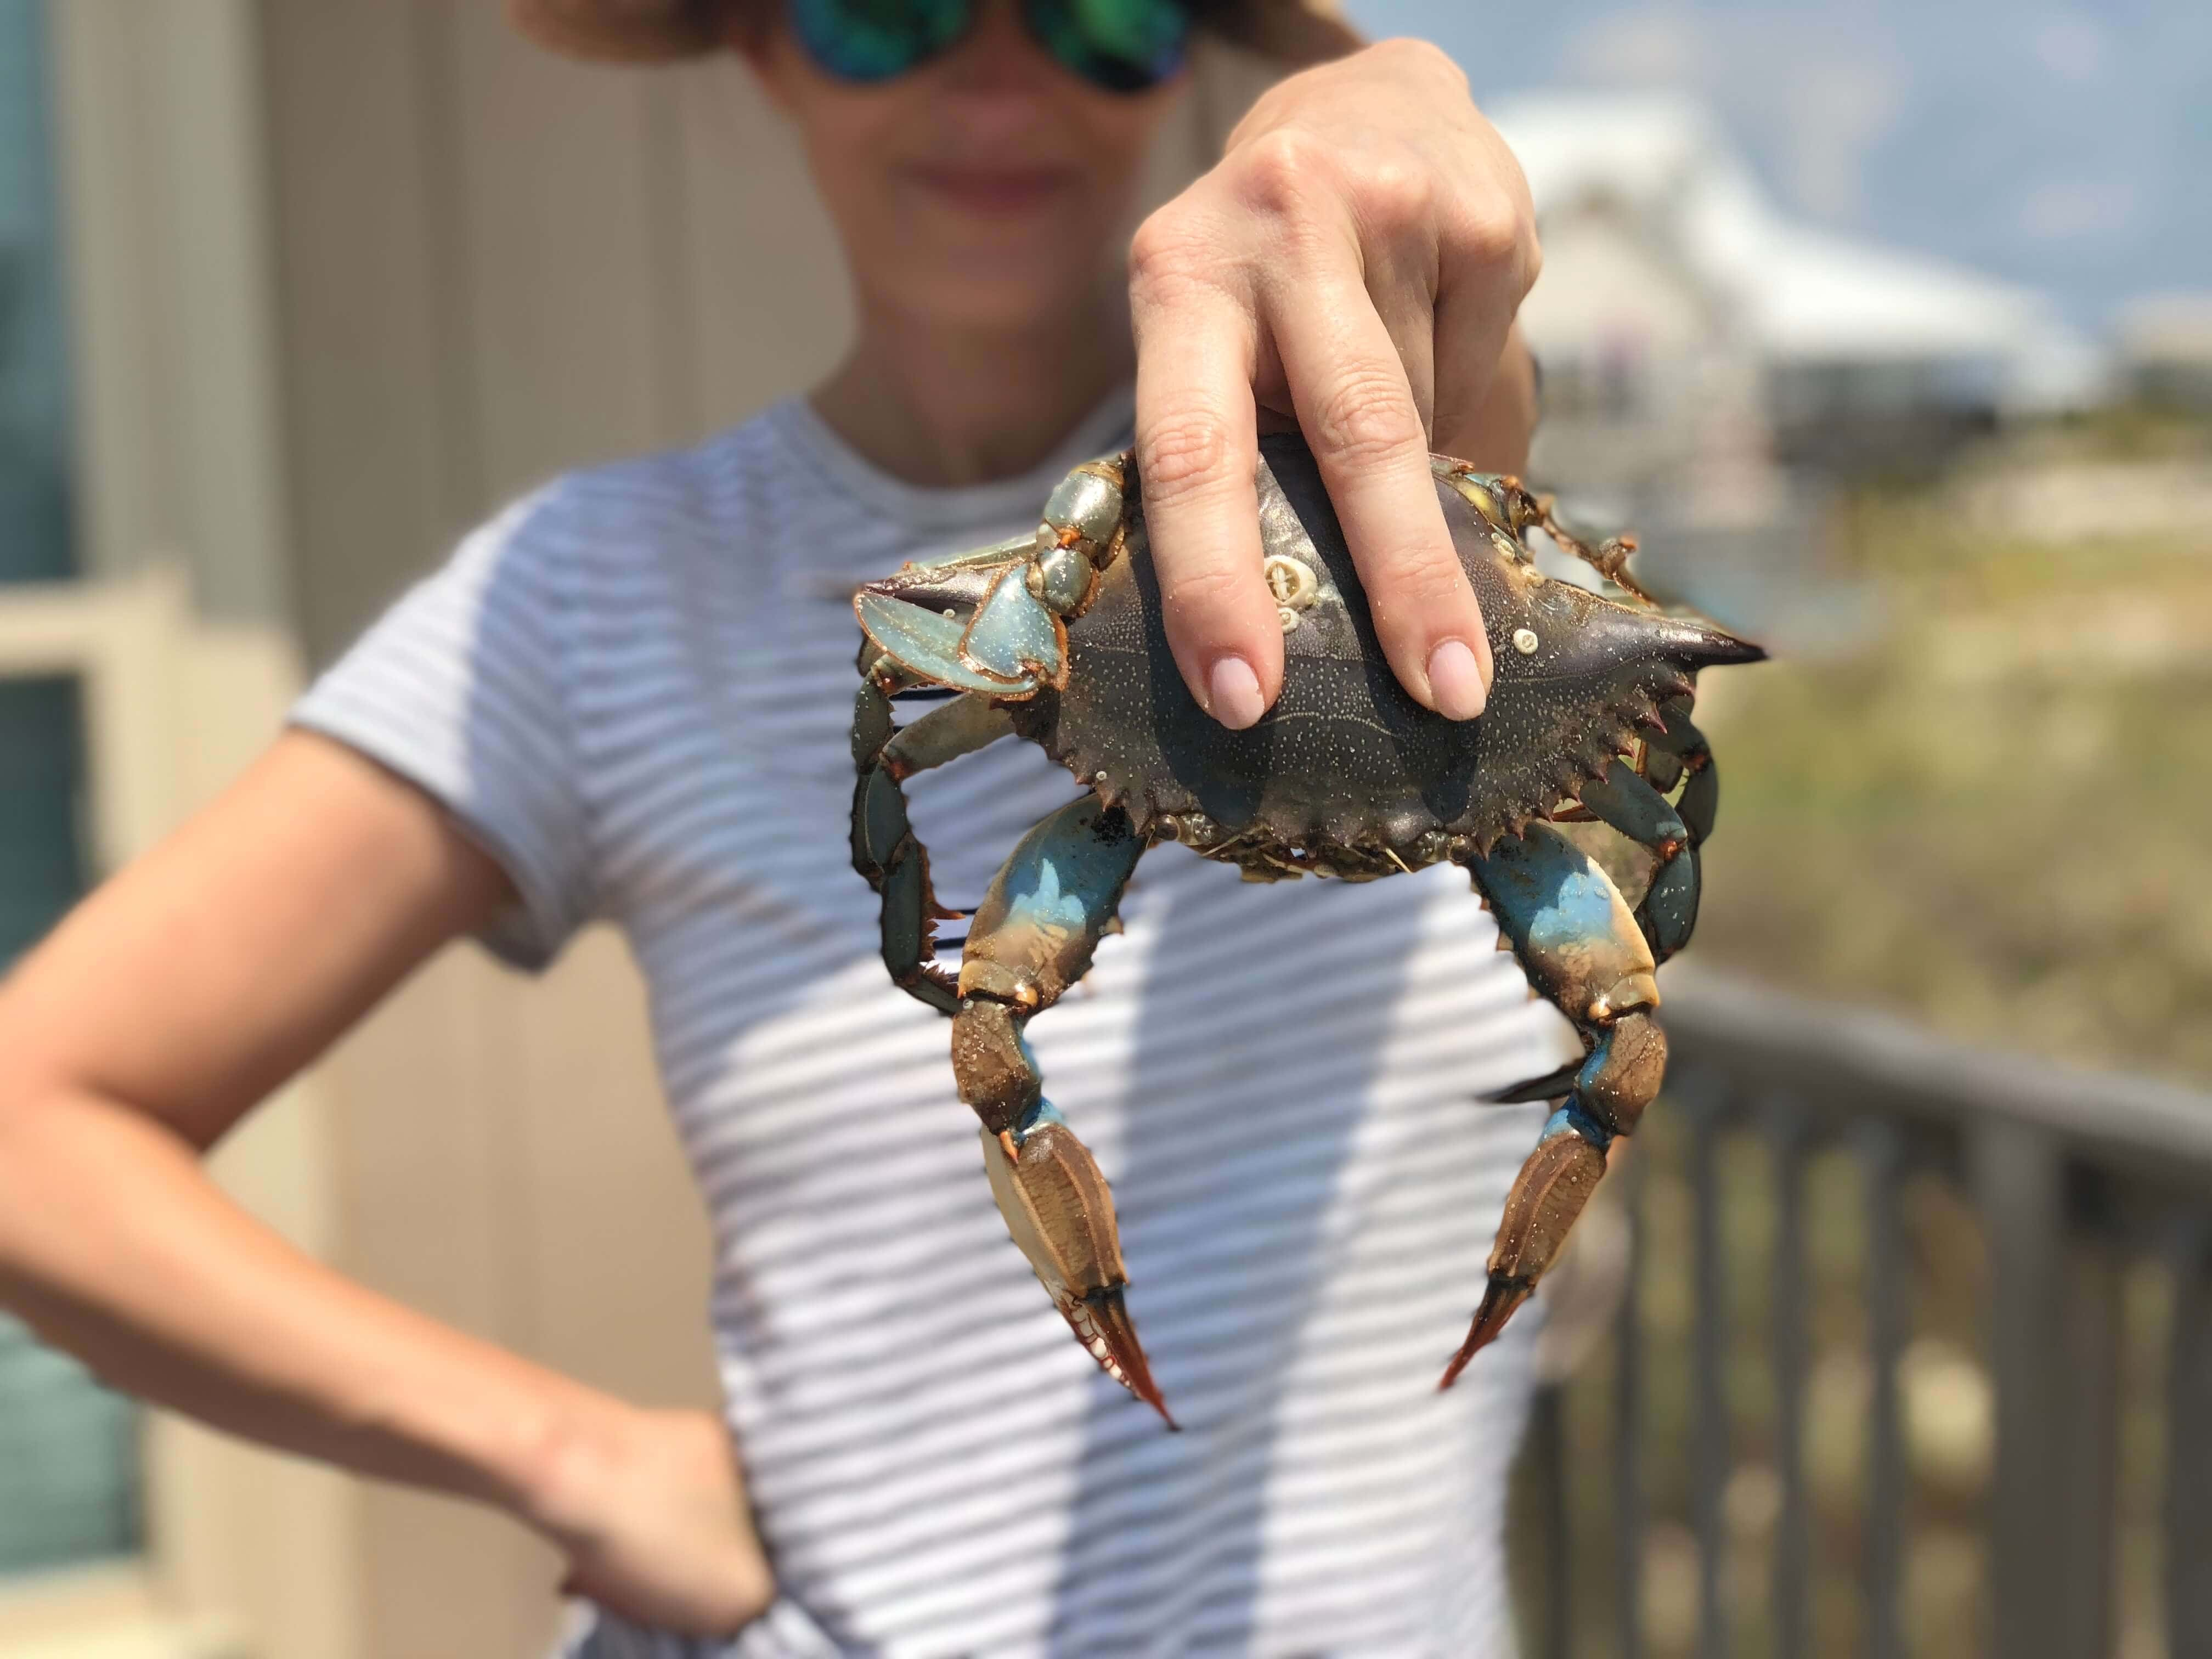 Stacy Lyn emphatically holding up a freshly caught crab